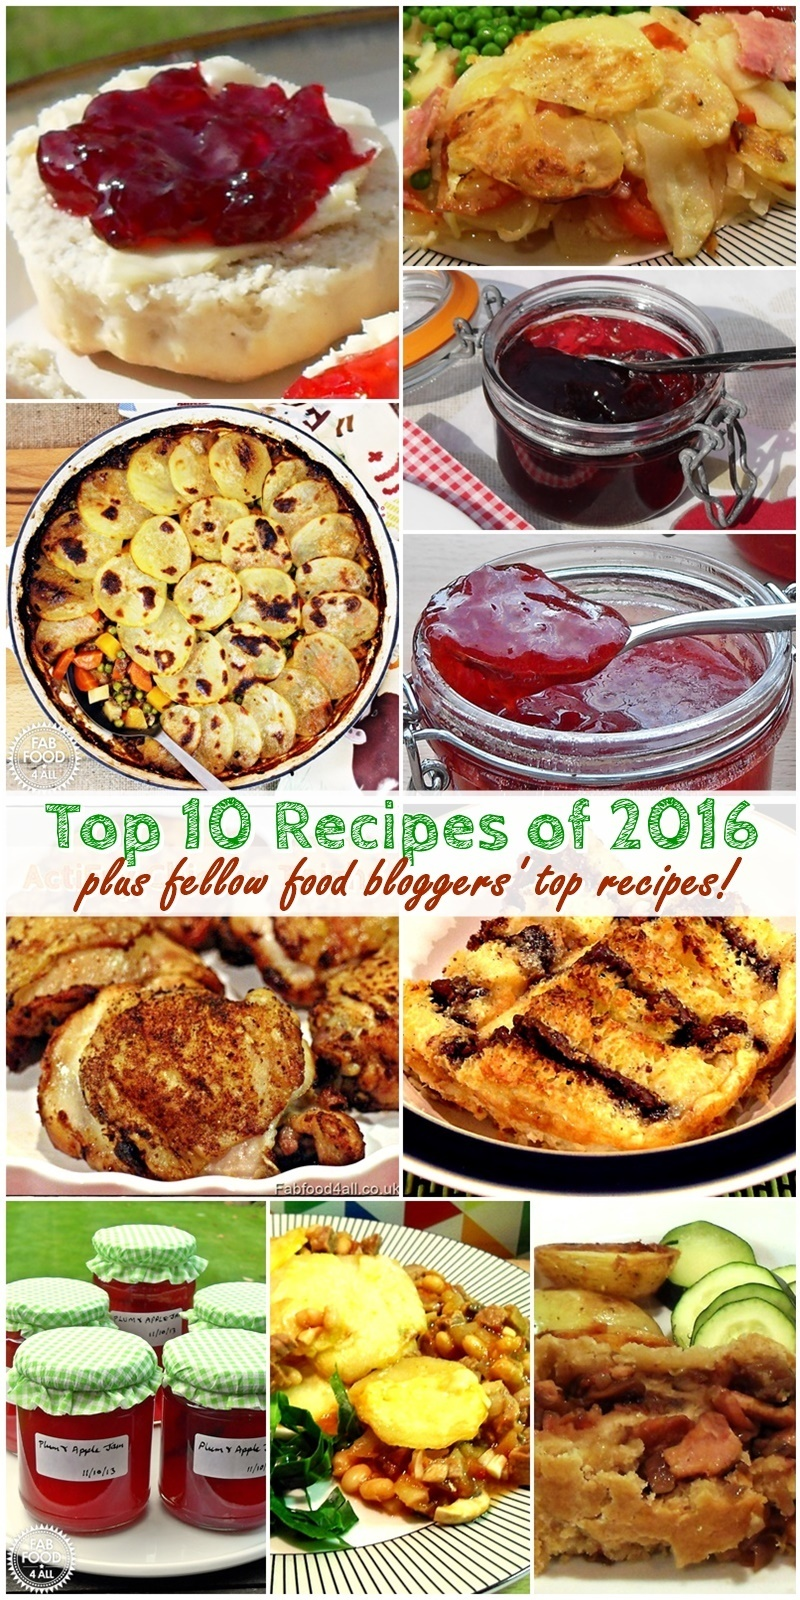 Top 10 Recipes of 2016 plus fellow food bloggers' top recipes!